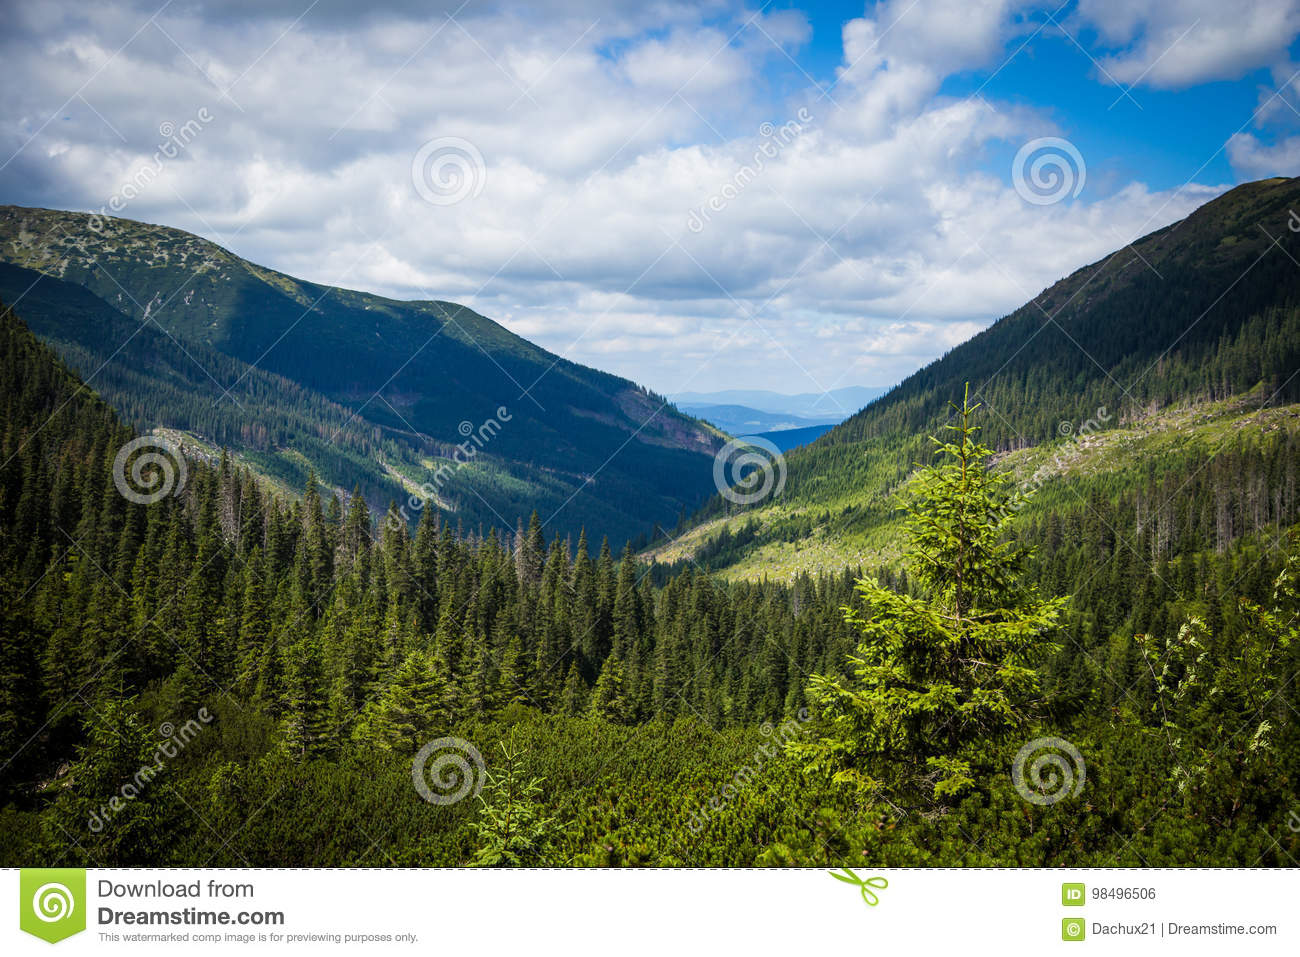 A beautiful Tatry mountain landscape in a sunny day